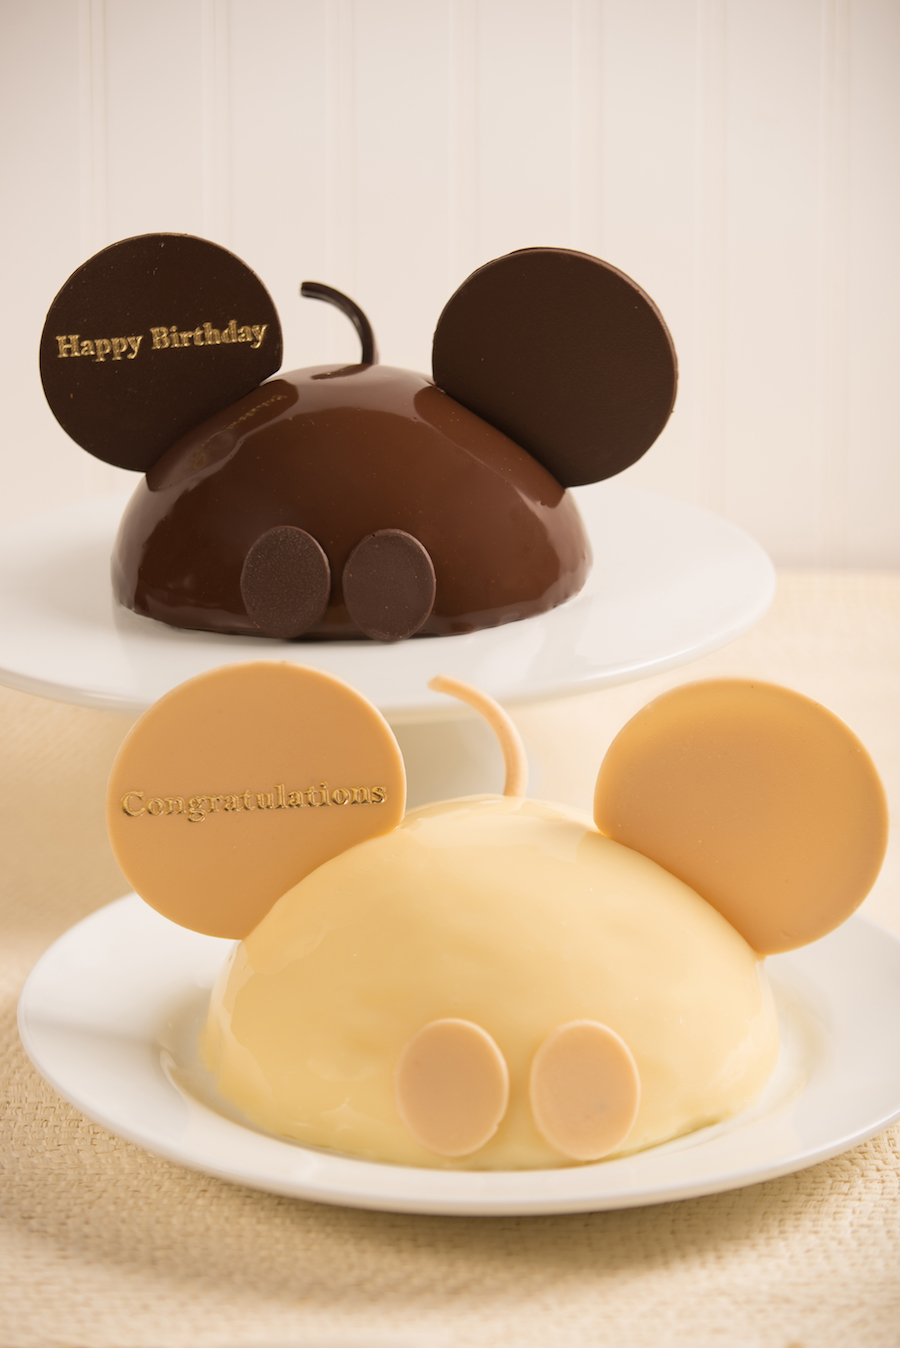 New Mickey Ears Celebration Cakes